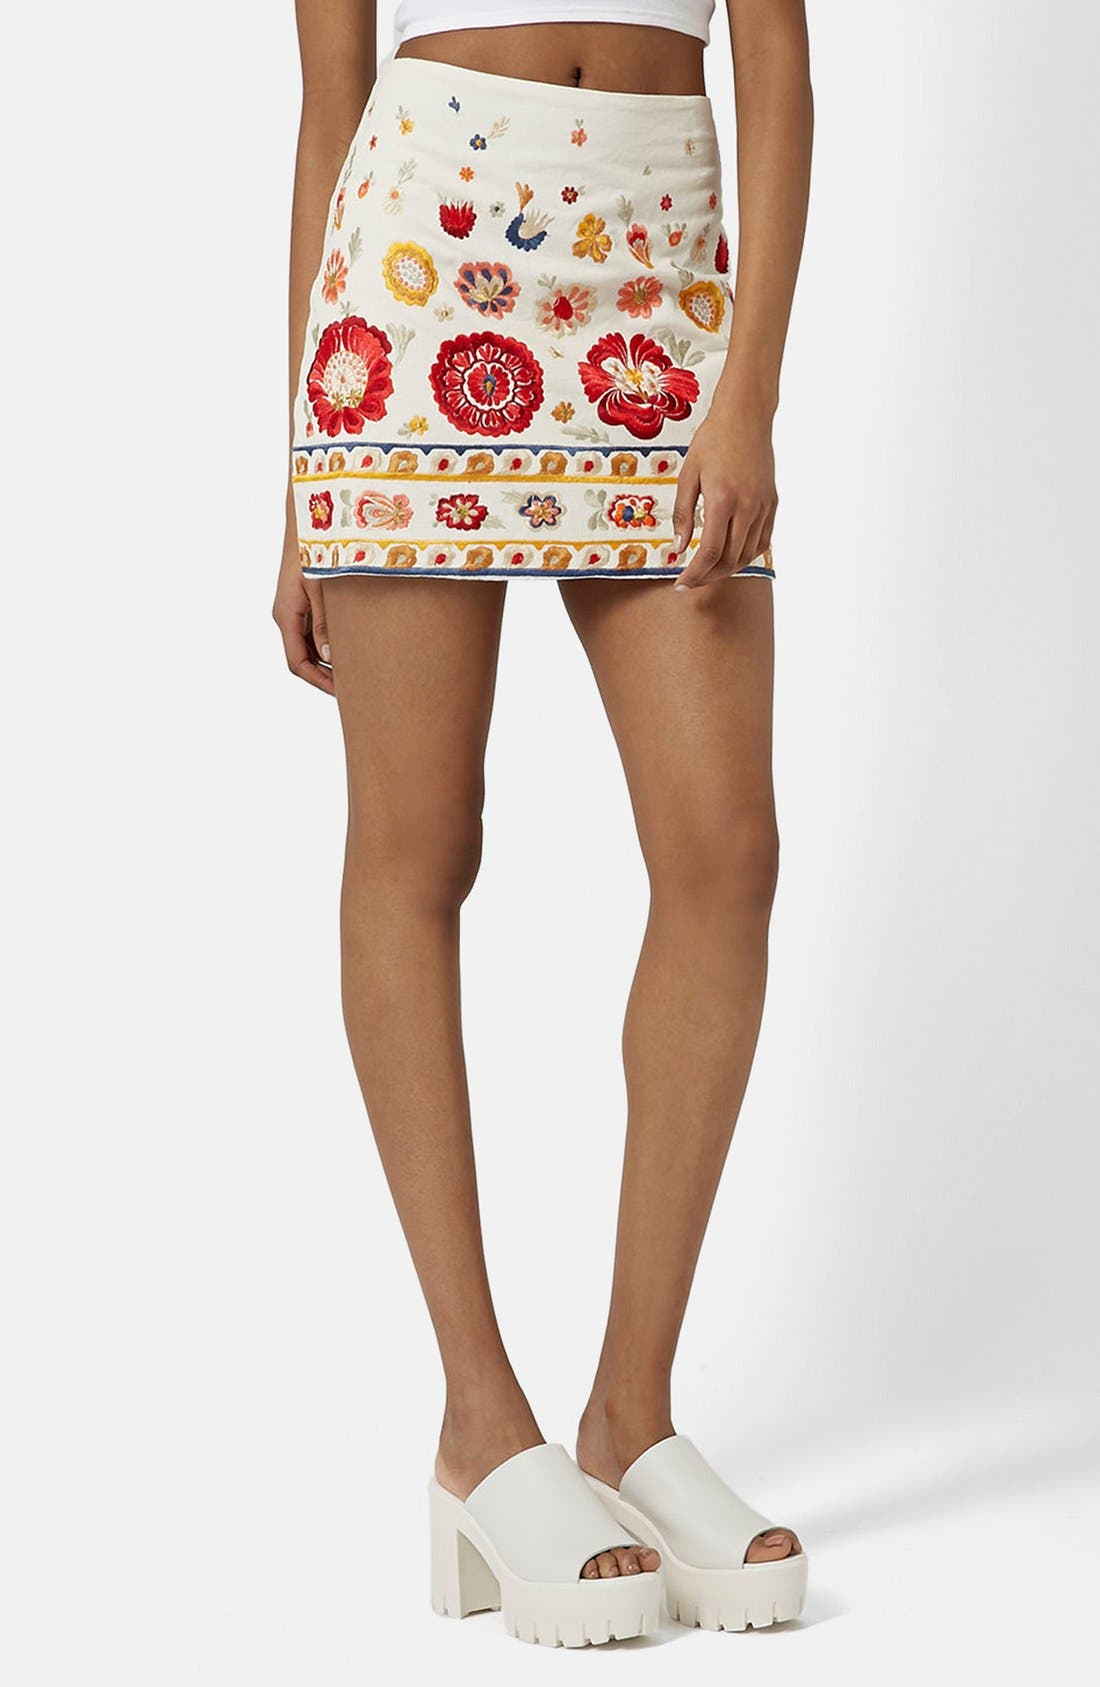 TOPSHOP, 'Troubadour' Embroidered Miniskirt, Main thumbnail 1, color, 900